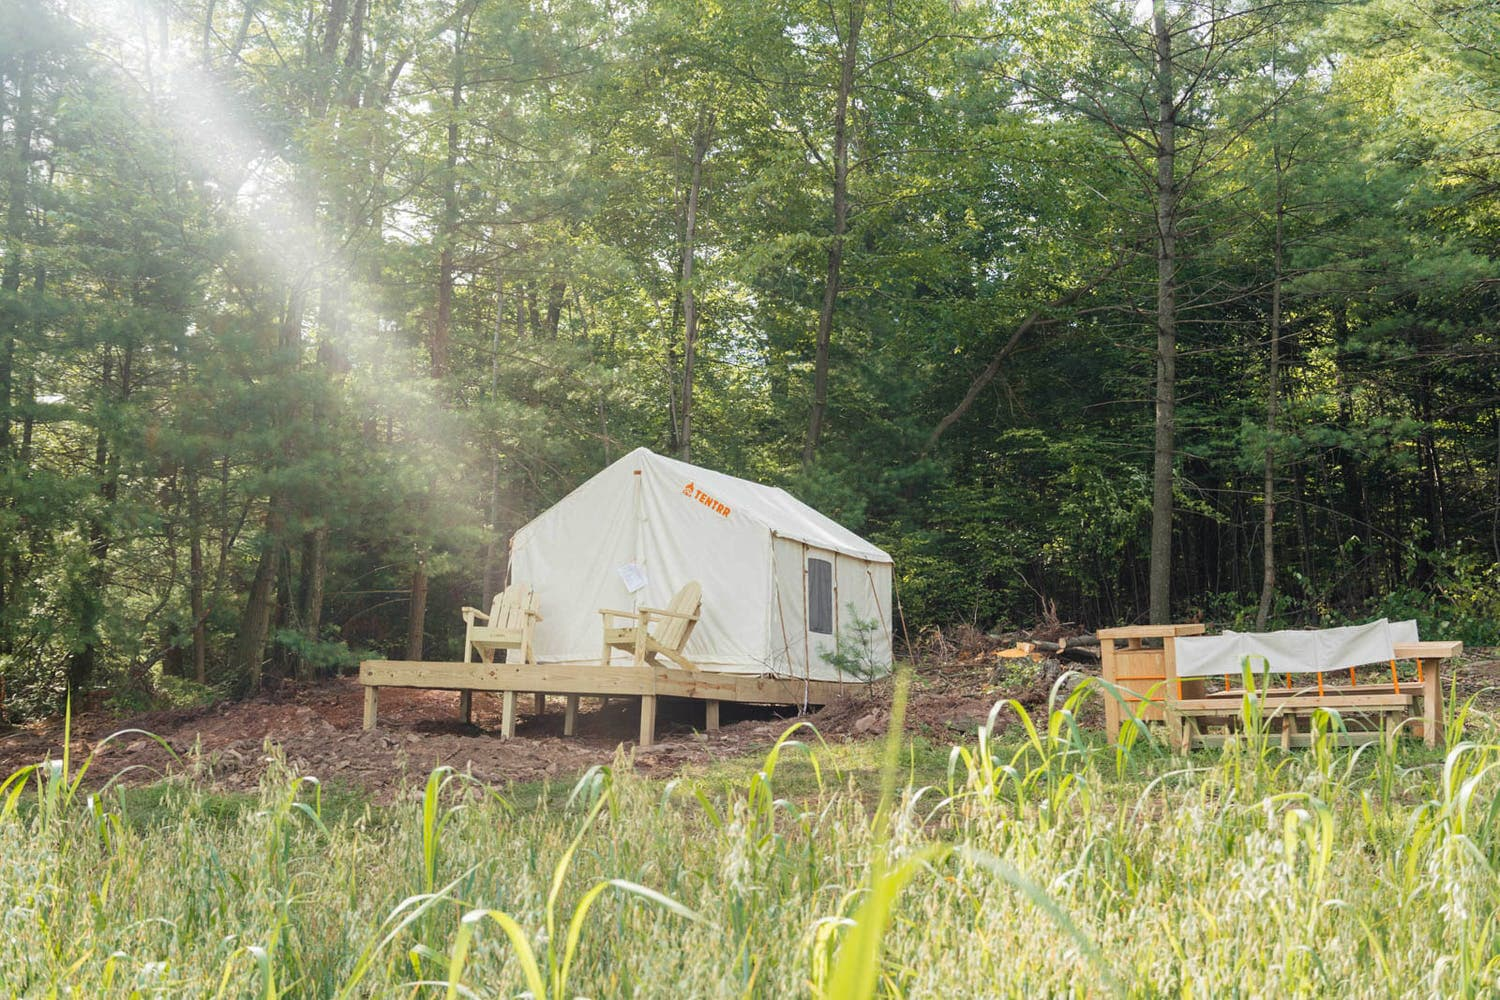 The Best of Glamping and Camping in Pennsylvania